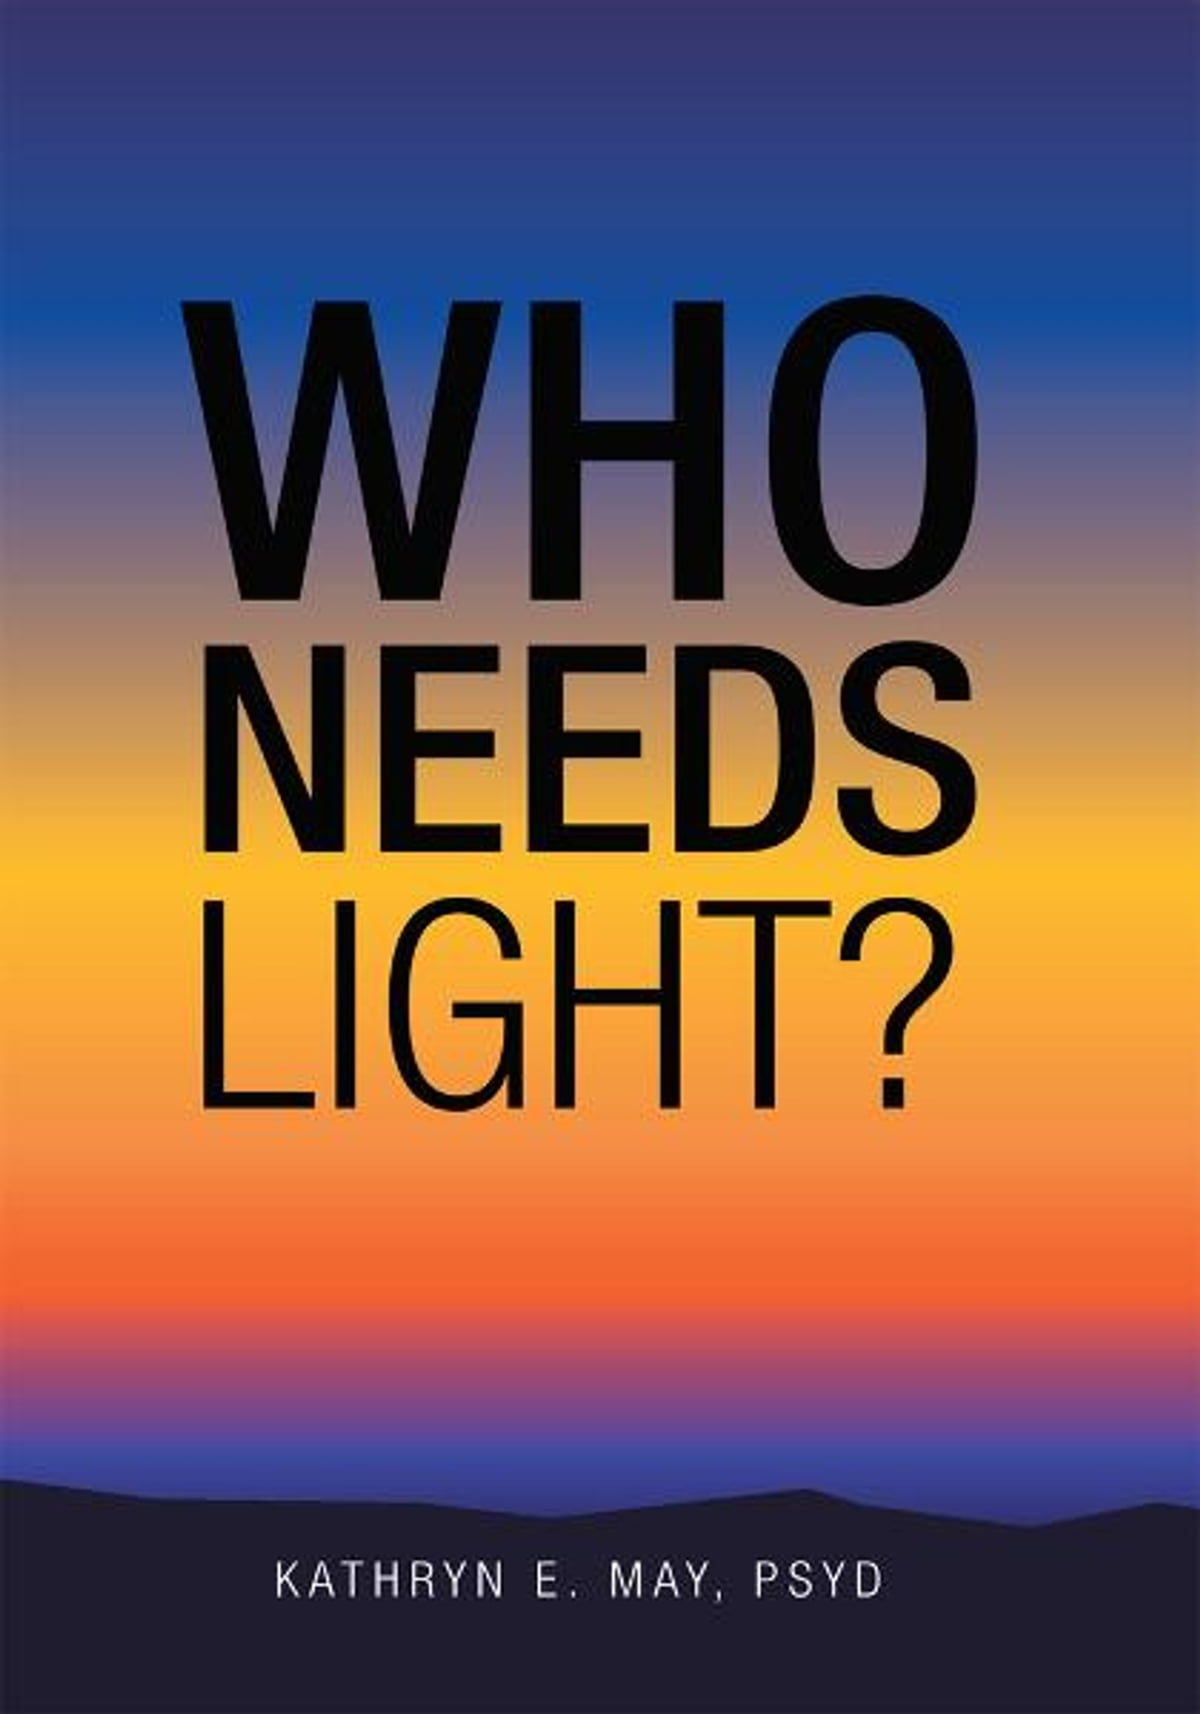 Who needs light ebook by kathryn e may psyd 9781468506990 ebook by kathryn e may psyd 9781468506990 rakuten kobo fandeluxe PDF